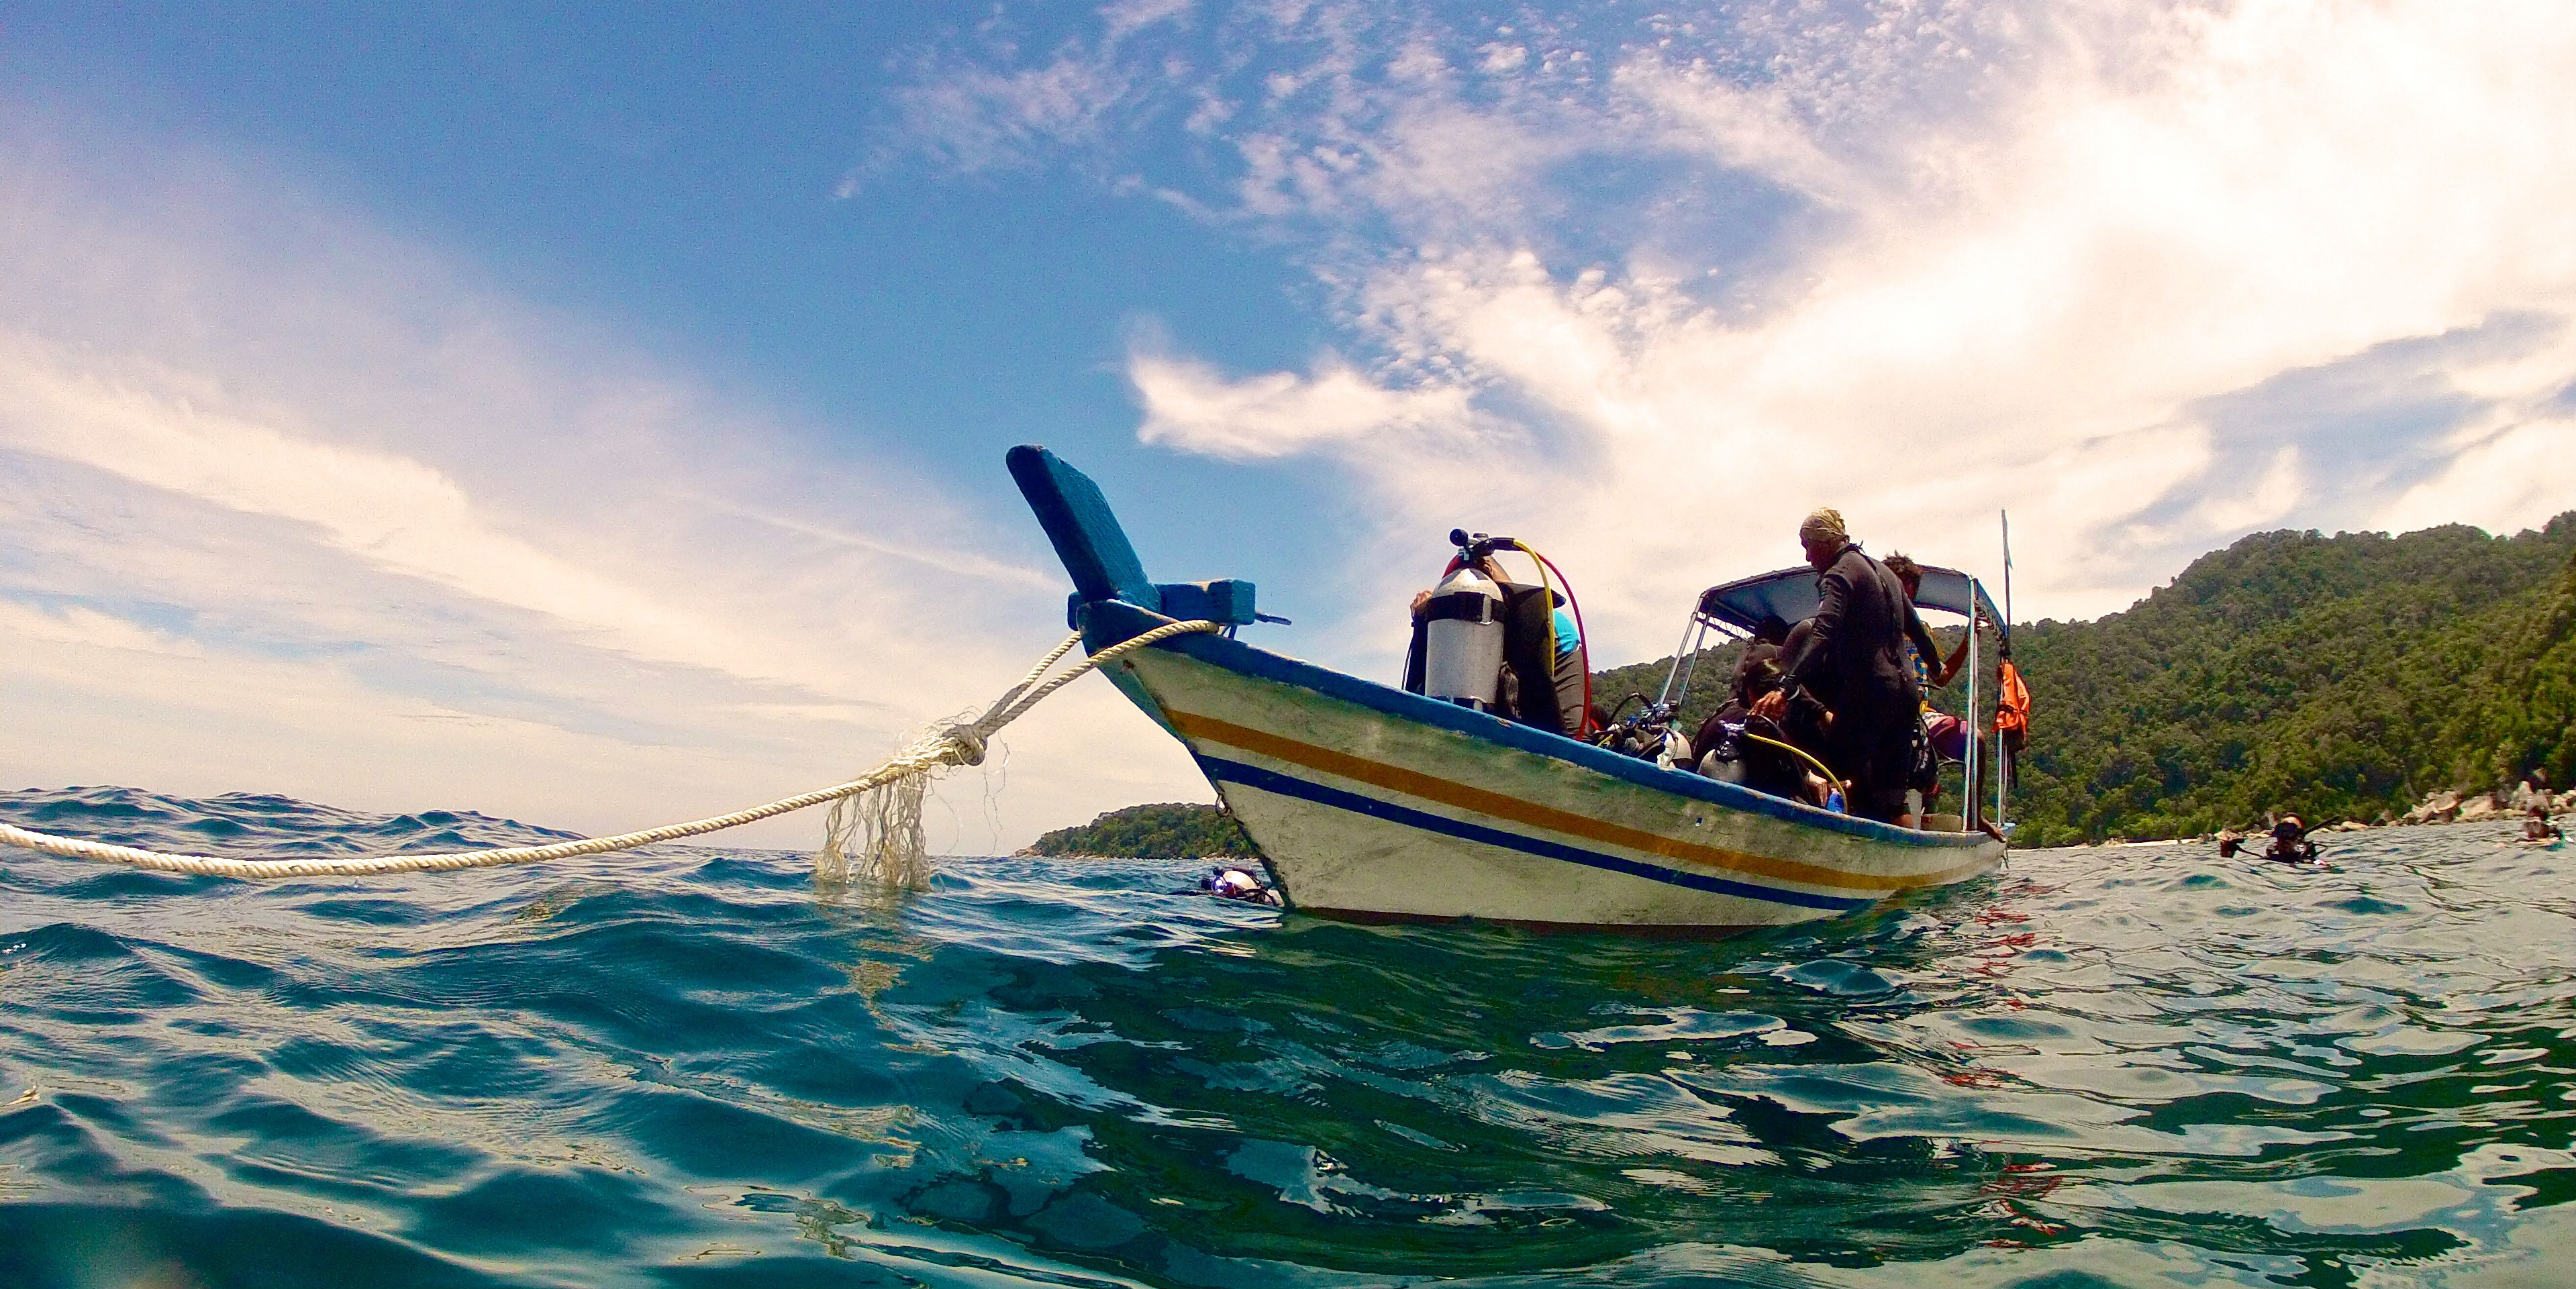 A dive crew prepares to embark on one of their scuba diving adventures.